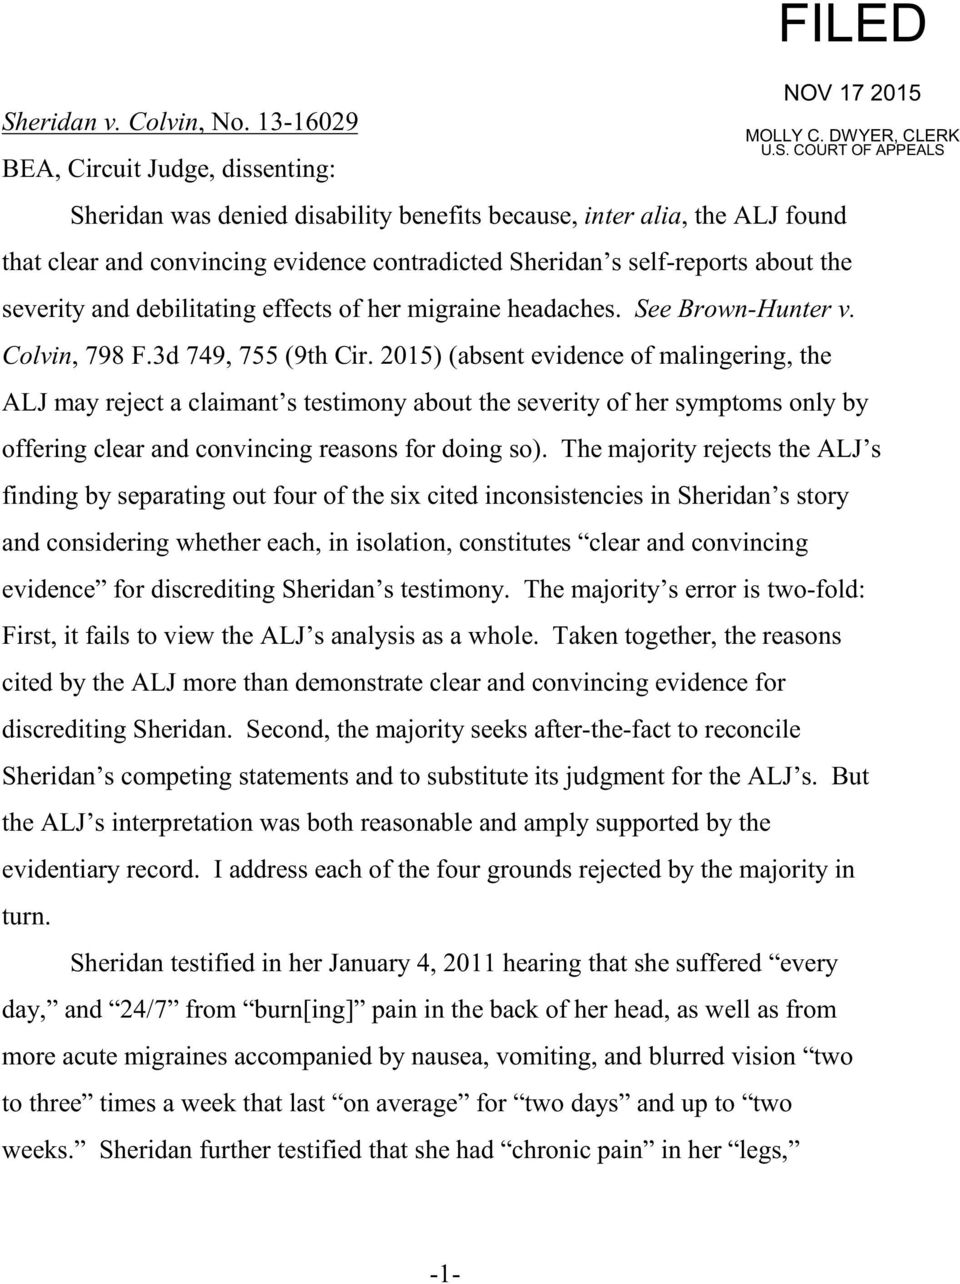 severity and debilitating effects of her migraine headaches. See Brown-Hunter v. Colvin, 798 F.3d 749, 755 (9th Cir.